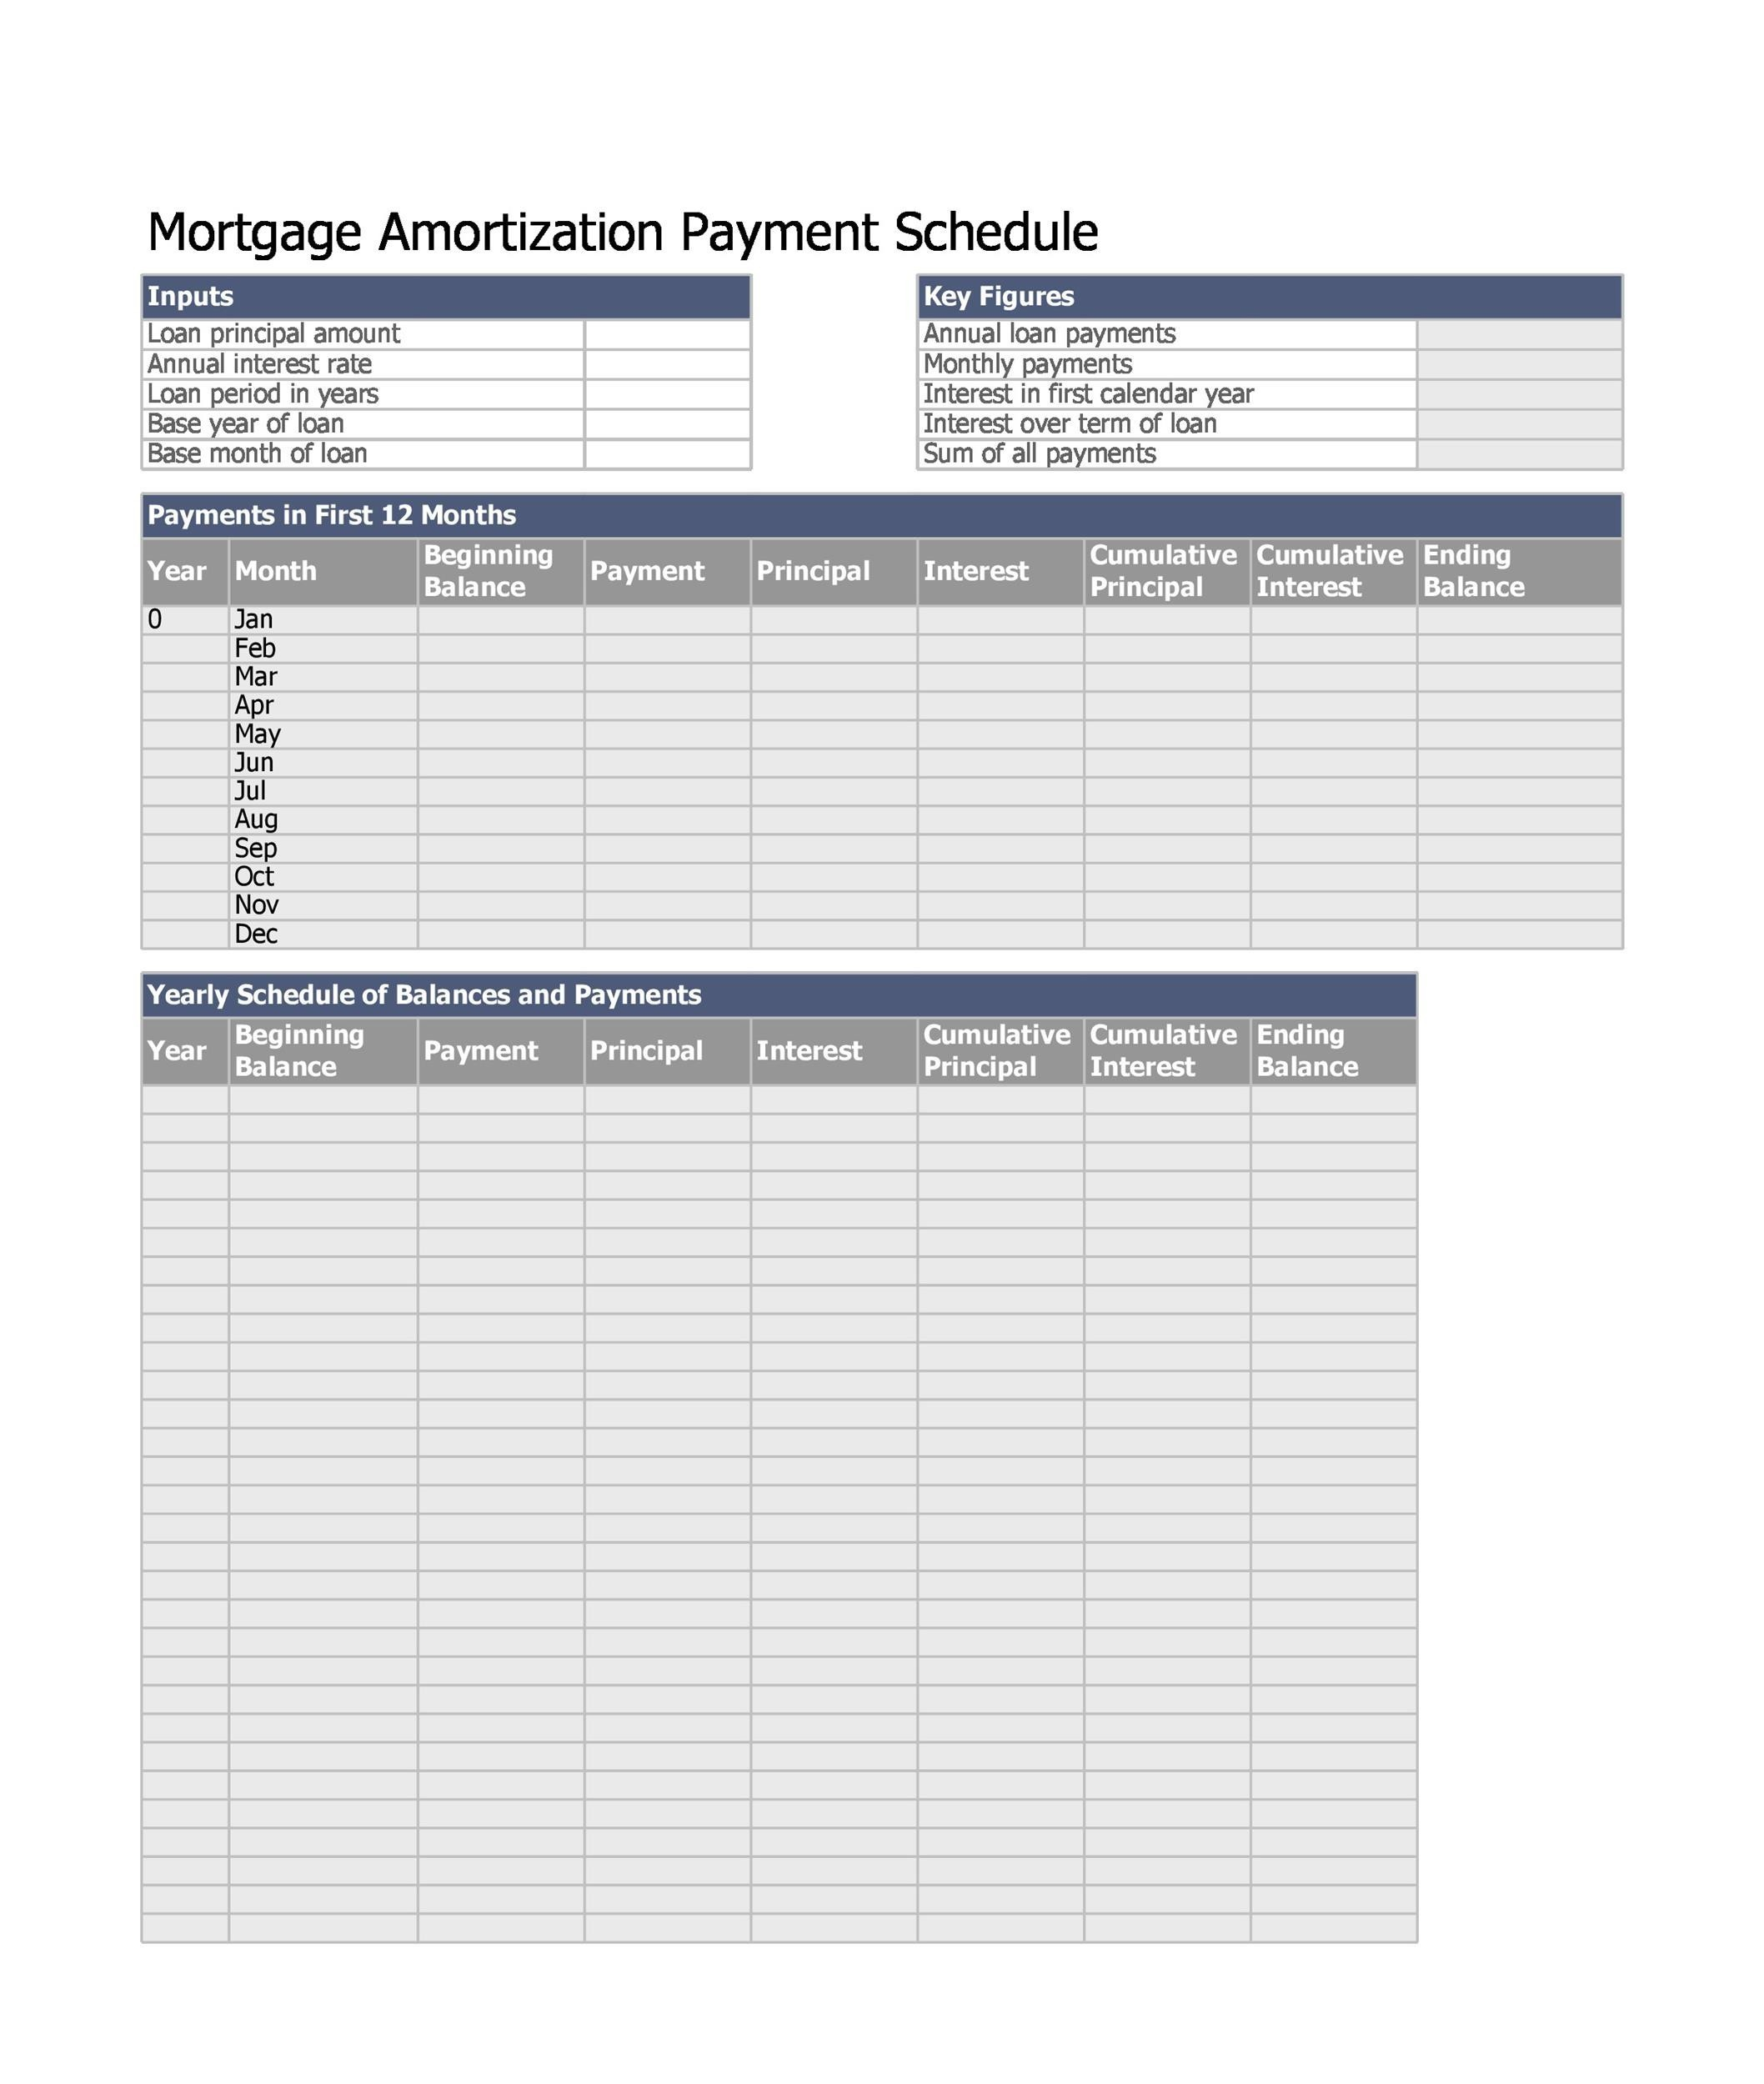 28 Tables to Calculate Loan Amortization Schedule (Excel) ᐅ